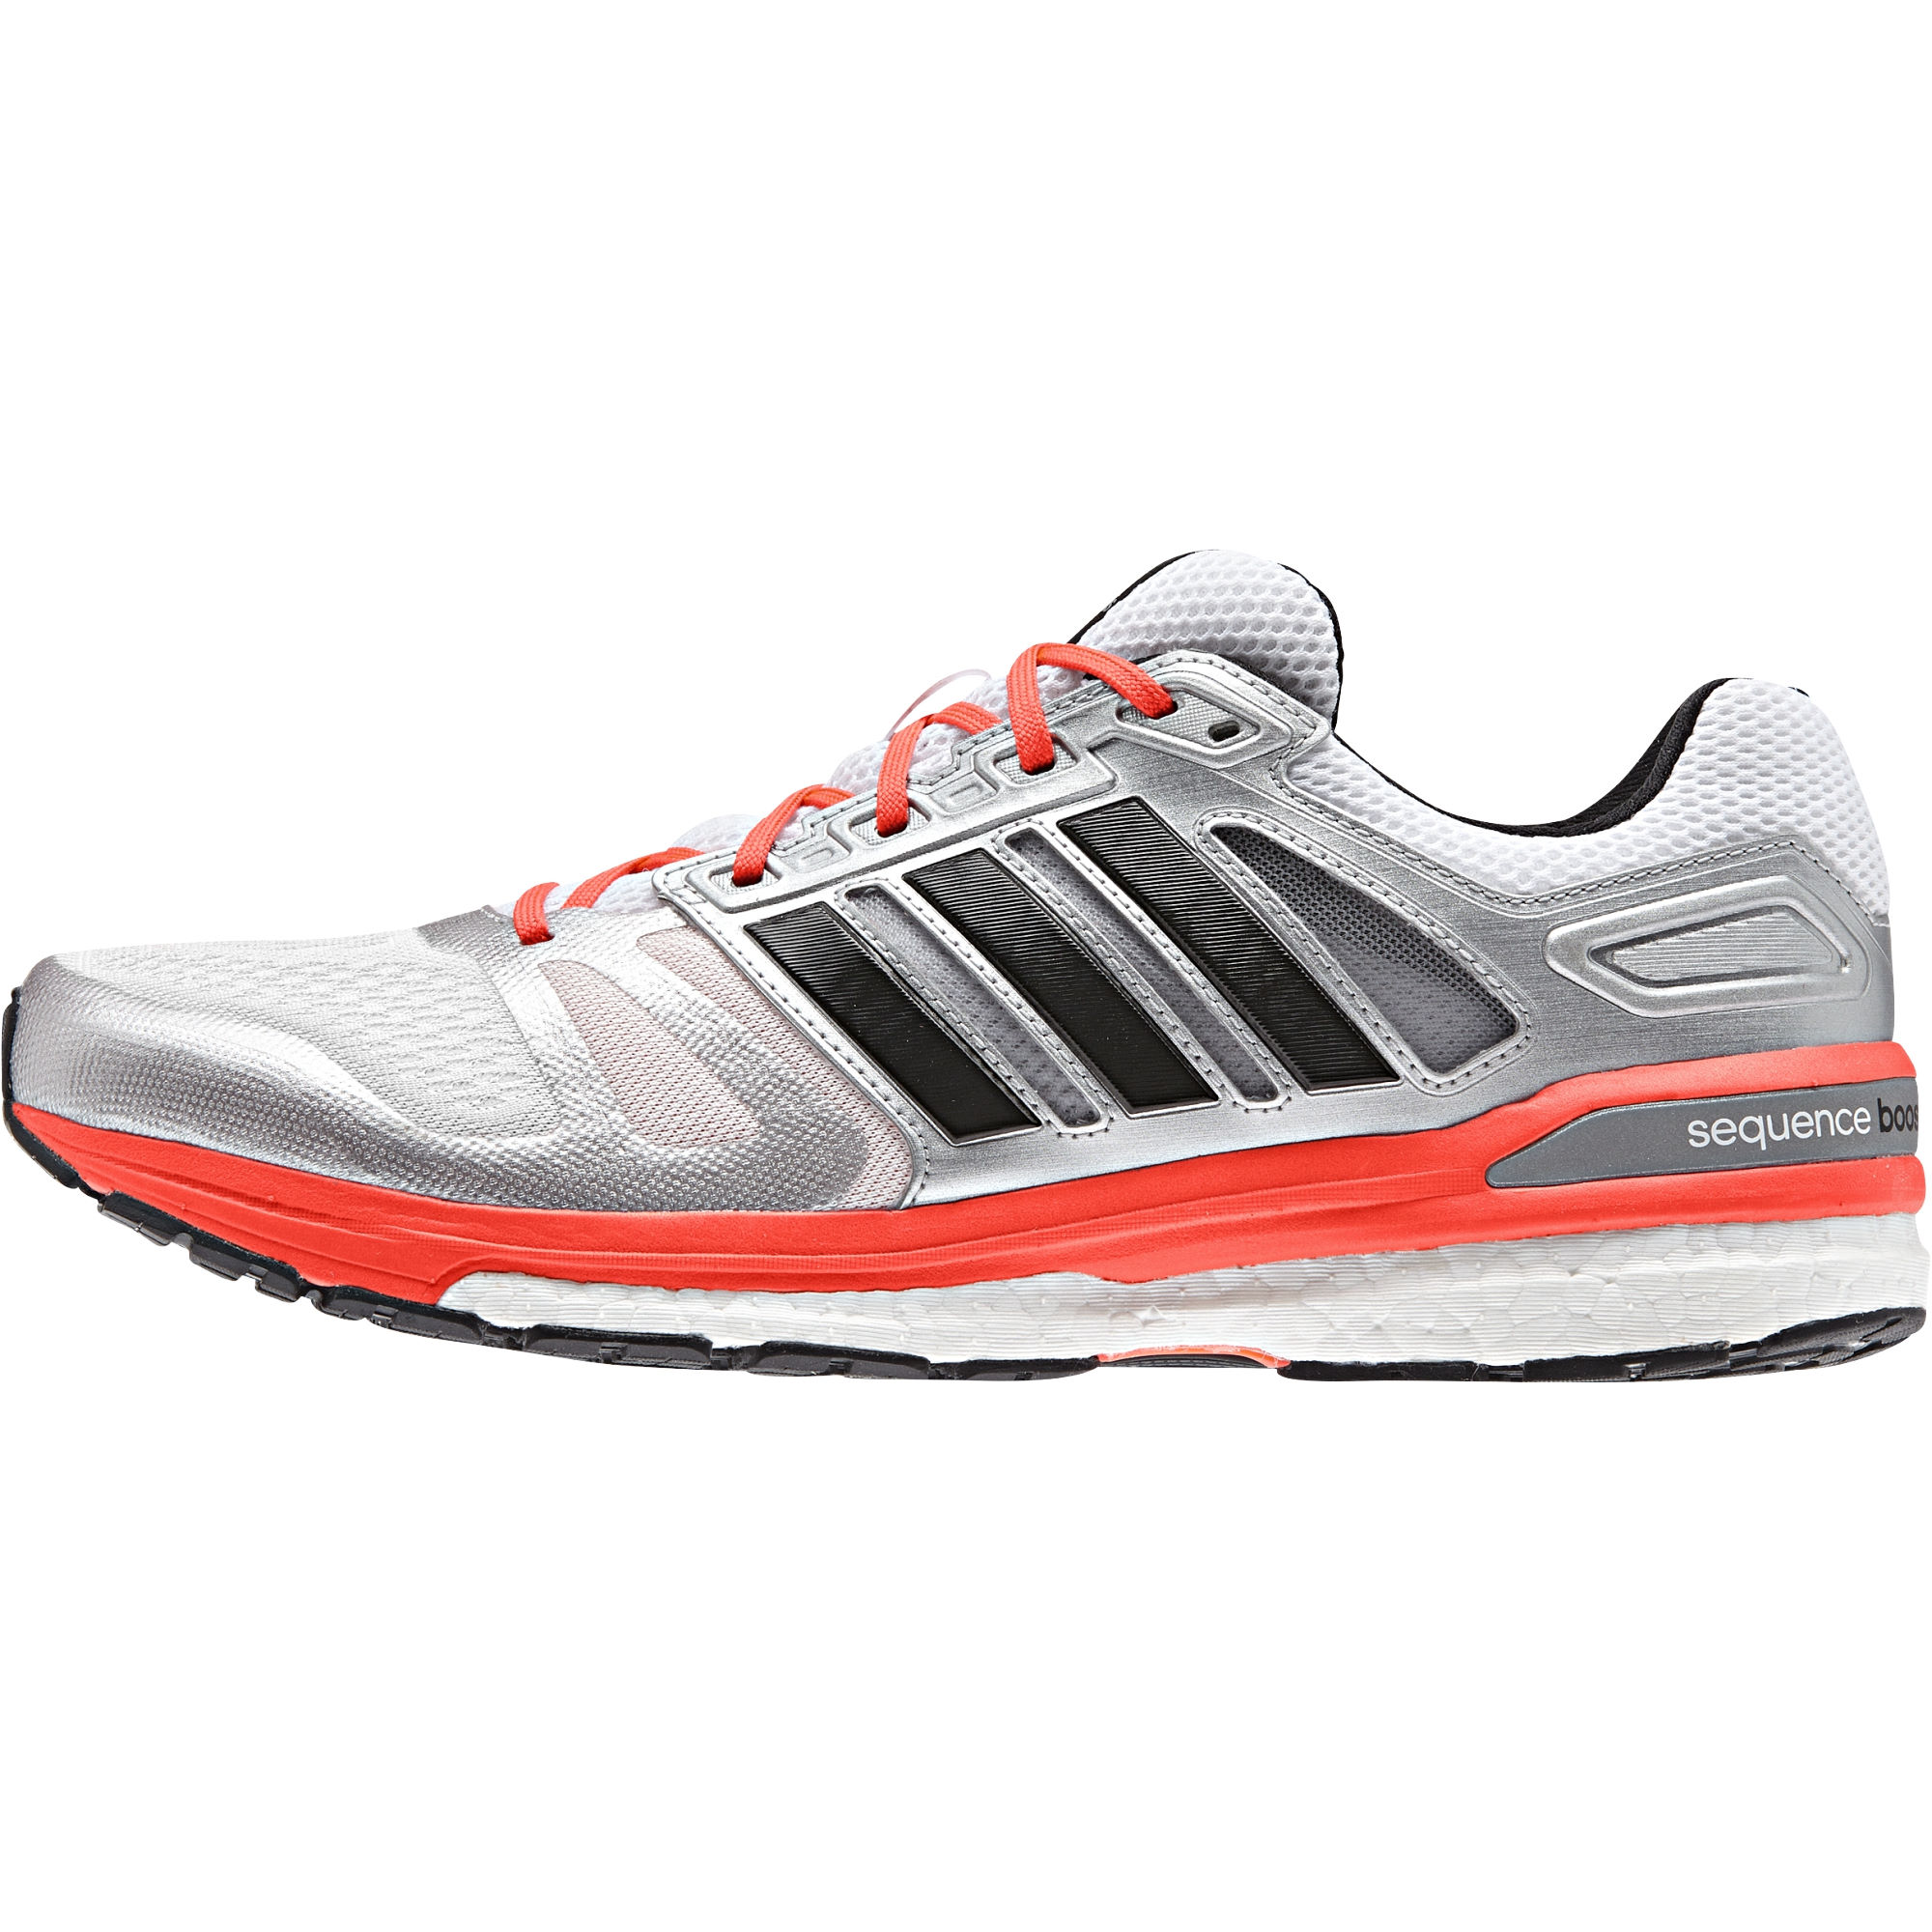 072b64ed6c849 Adidas Supernova Sequence Wide Adidas Supernova Sequence Wide 10 ...